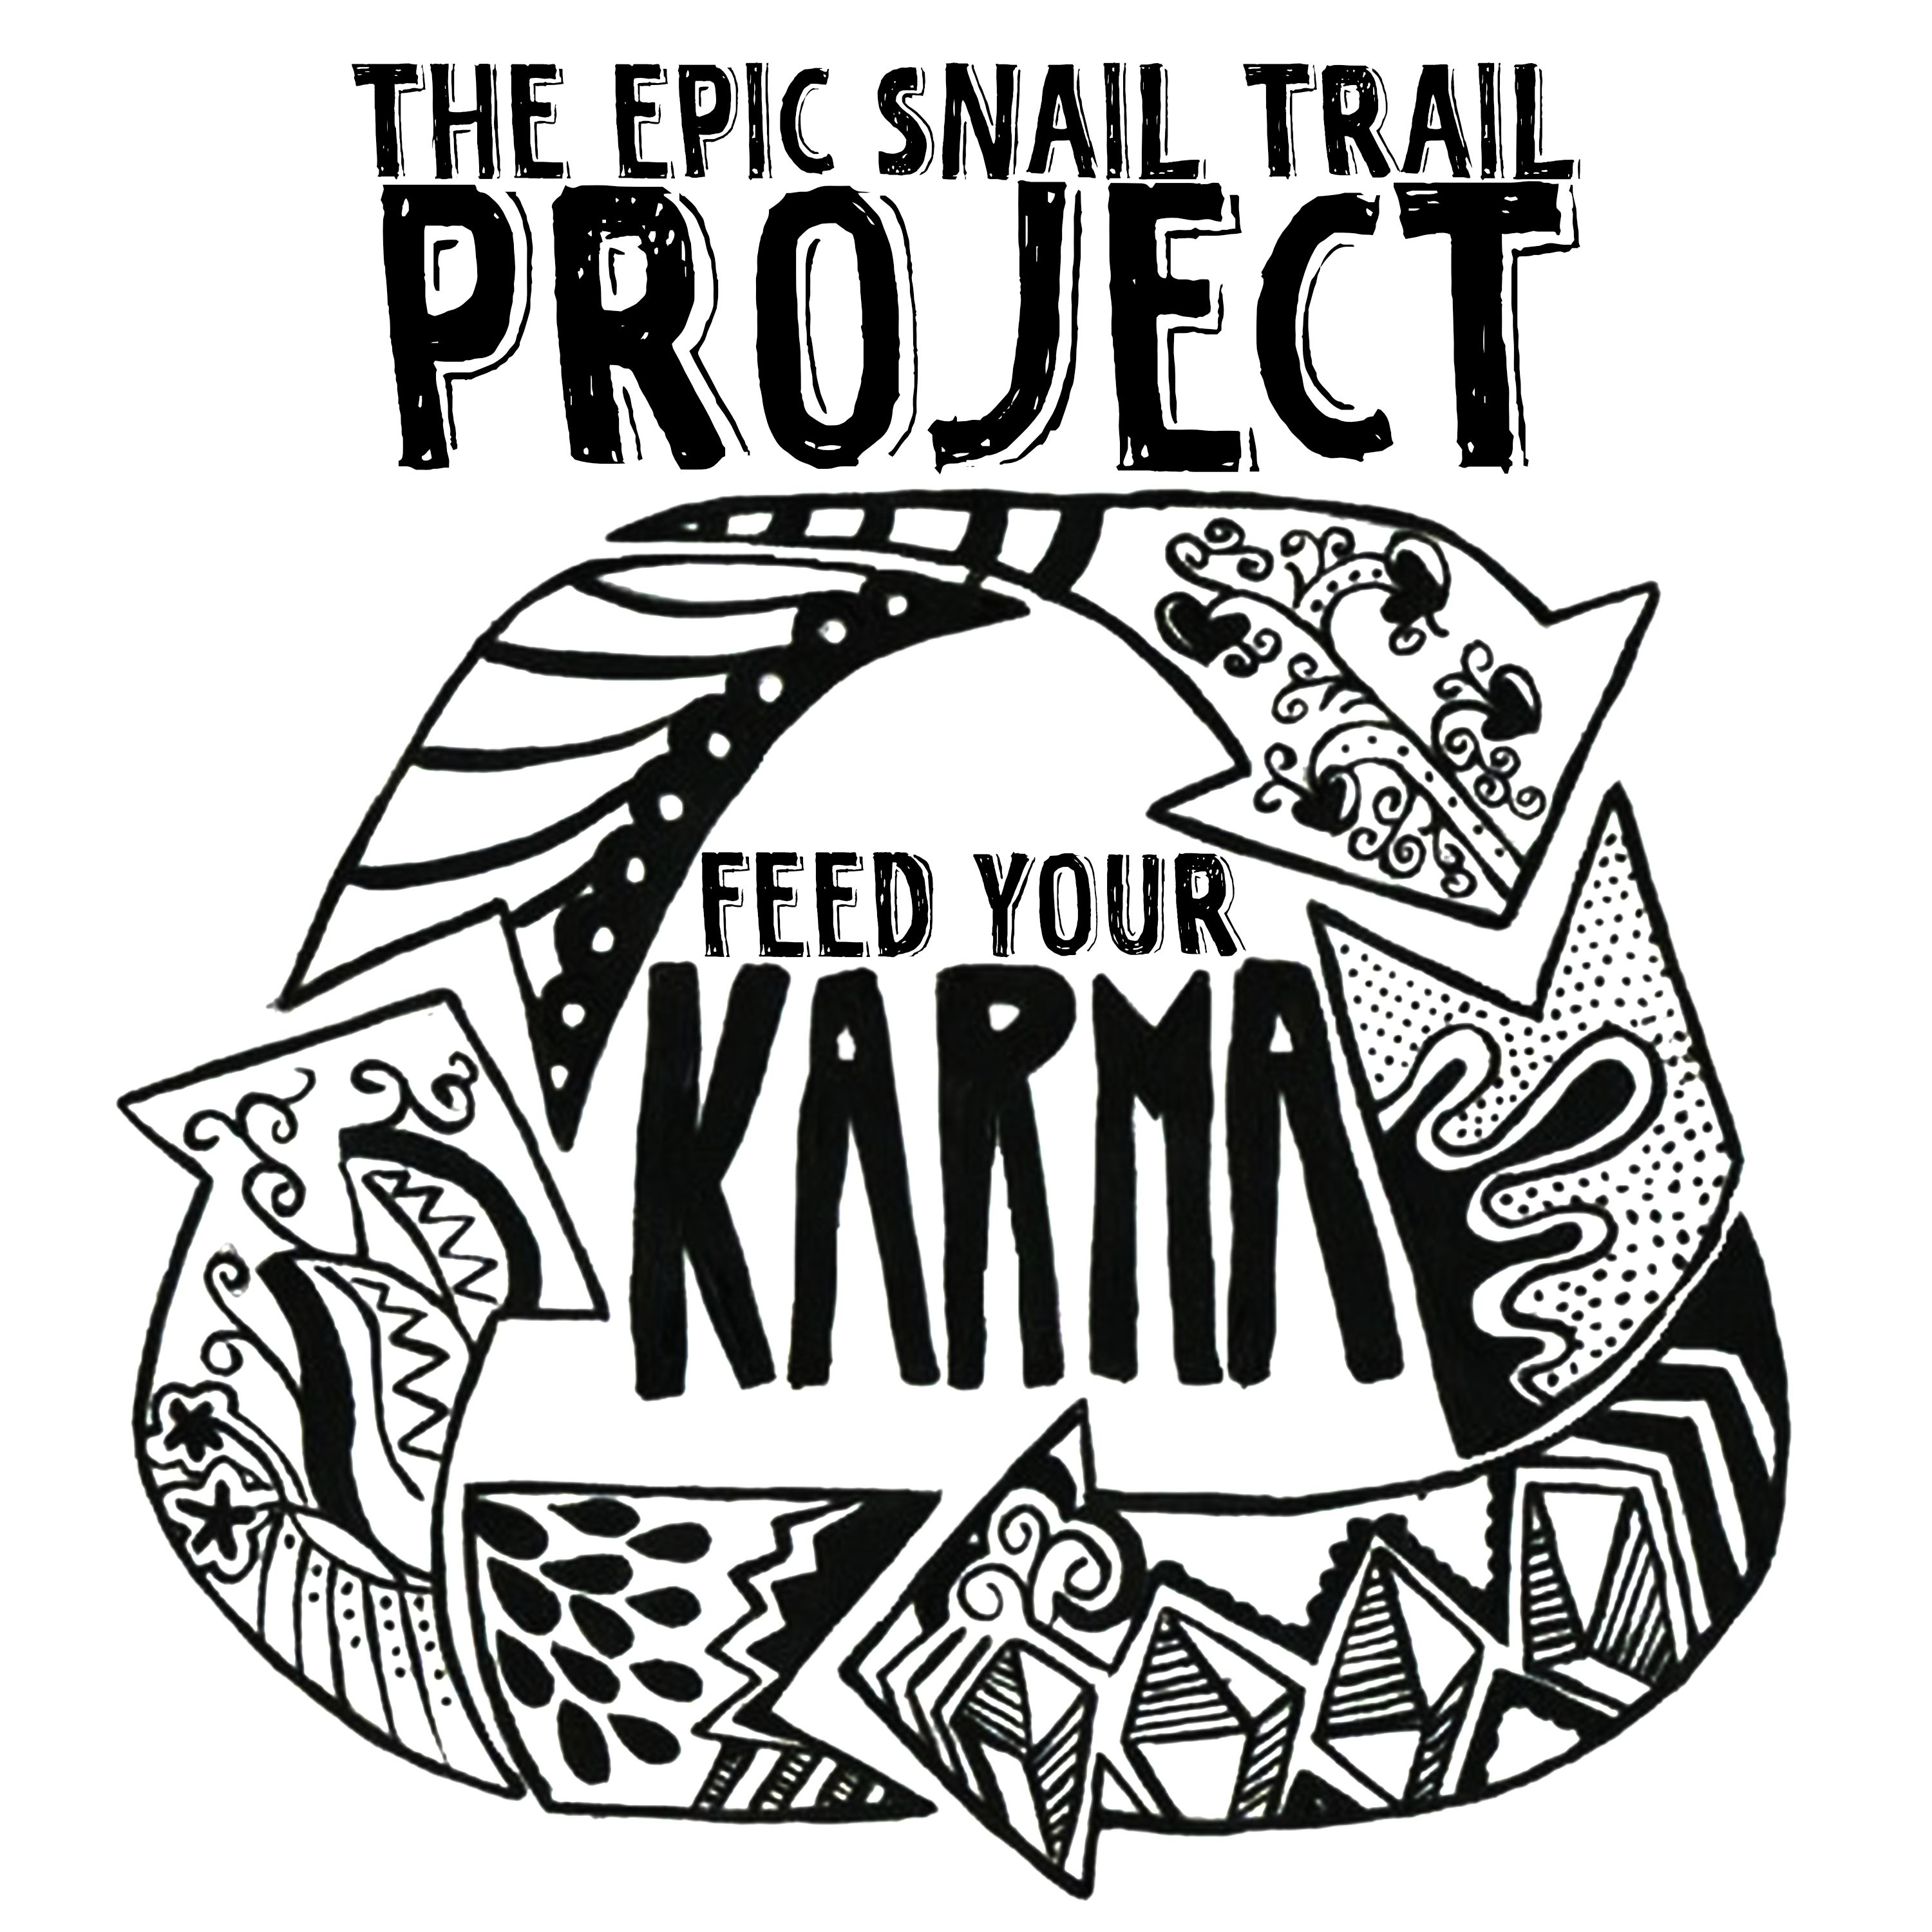 The Epic Snail Trail Project